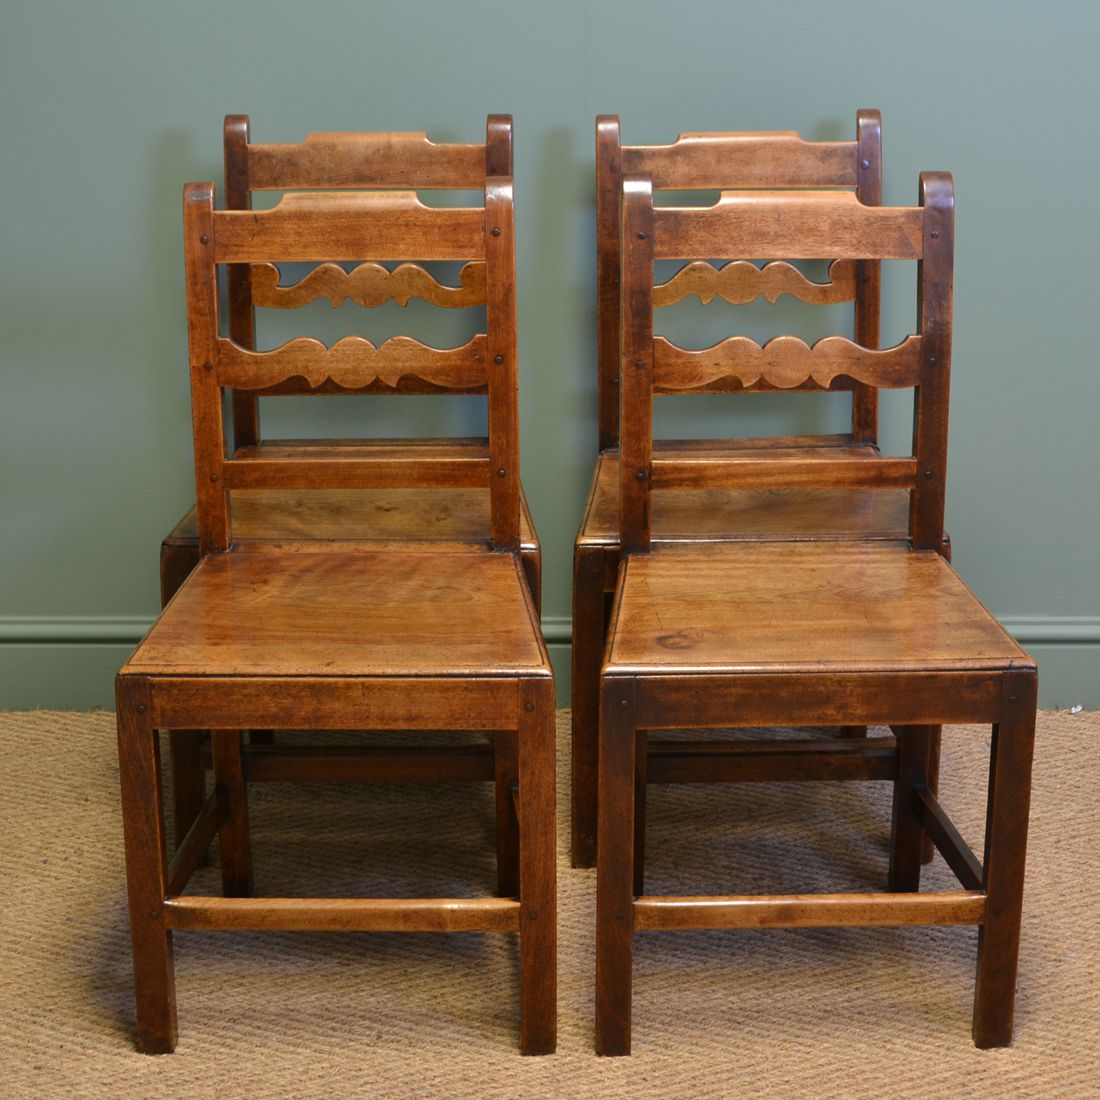 Set of Four Country Farmhouse Georgian Antique Kitchen Chairs - Antique Georgian Chairs Antique Chairs Pinterest Antiques